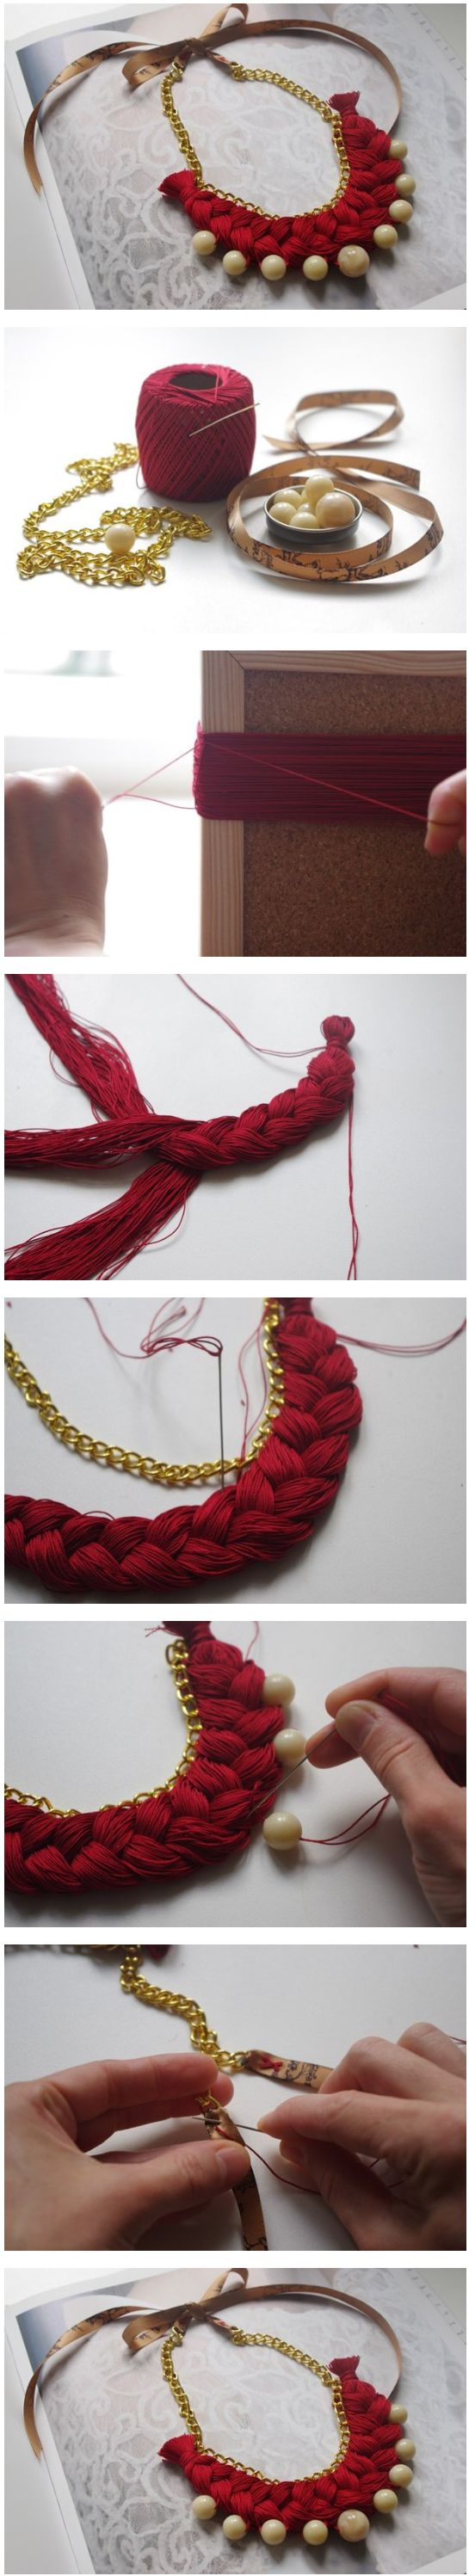 Step by step to make this beautiful necklace.